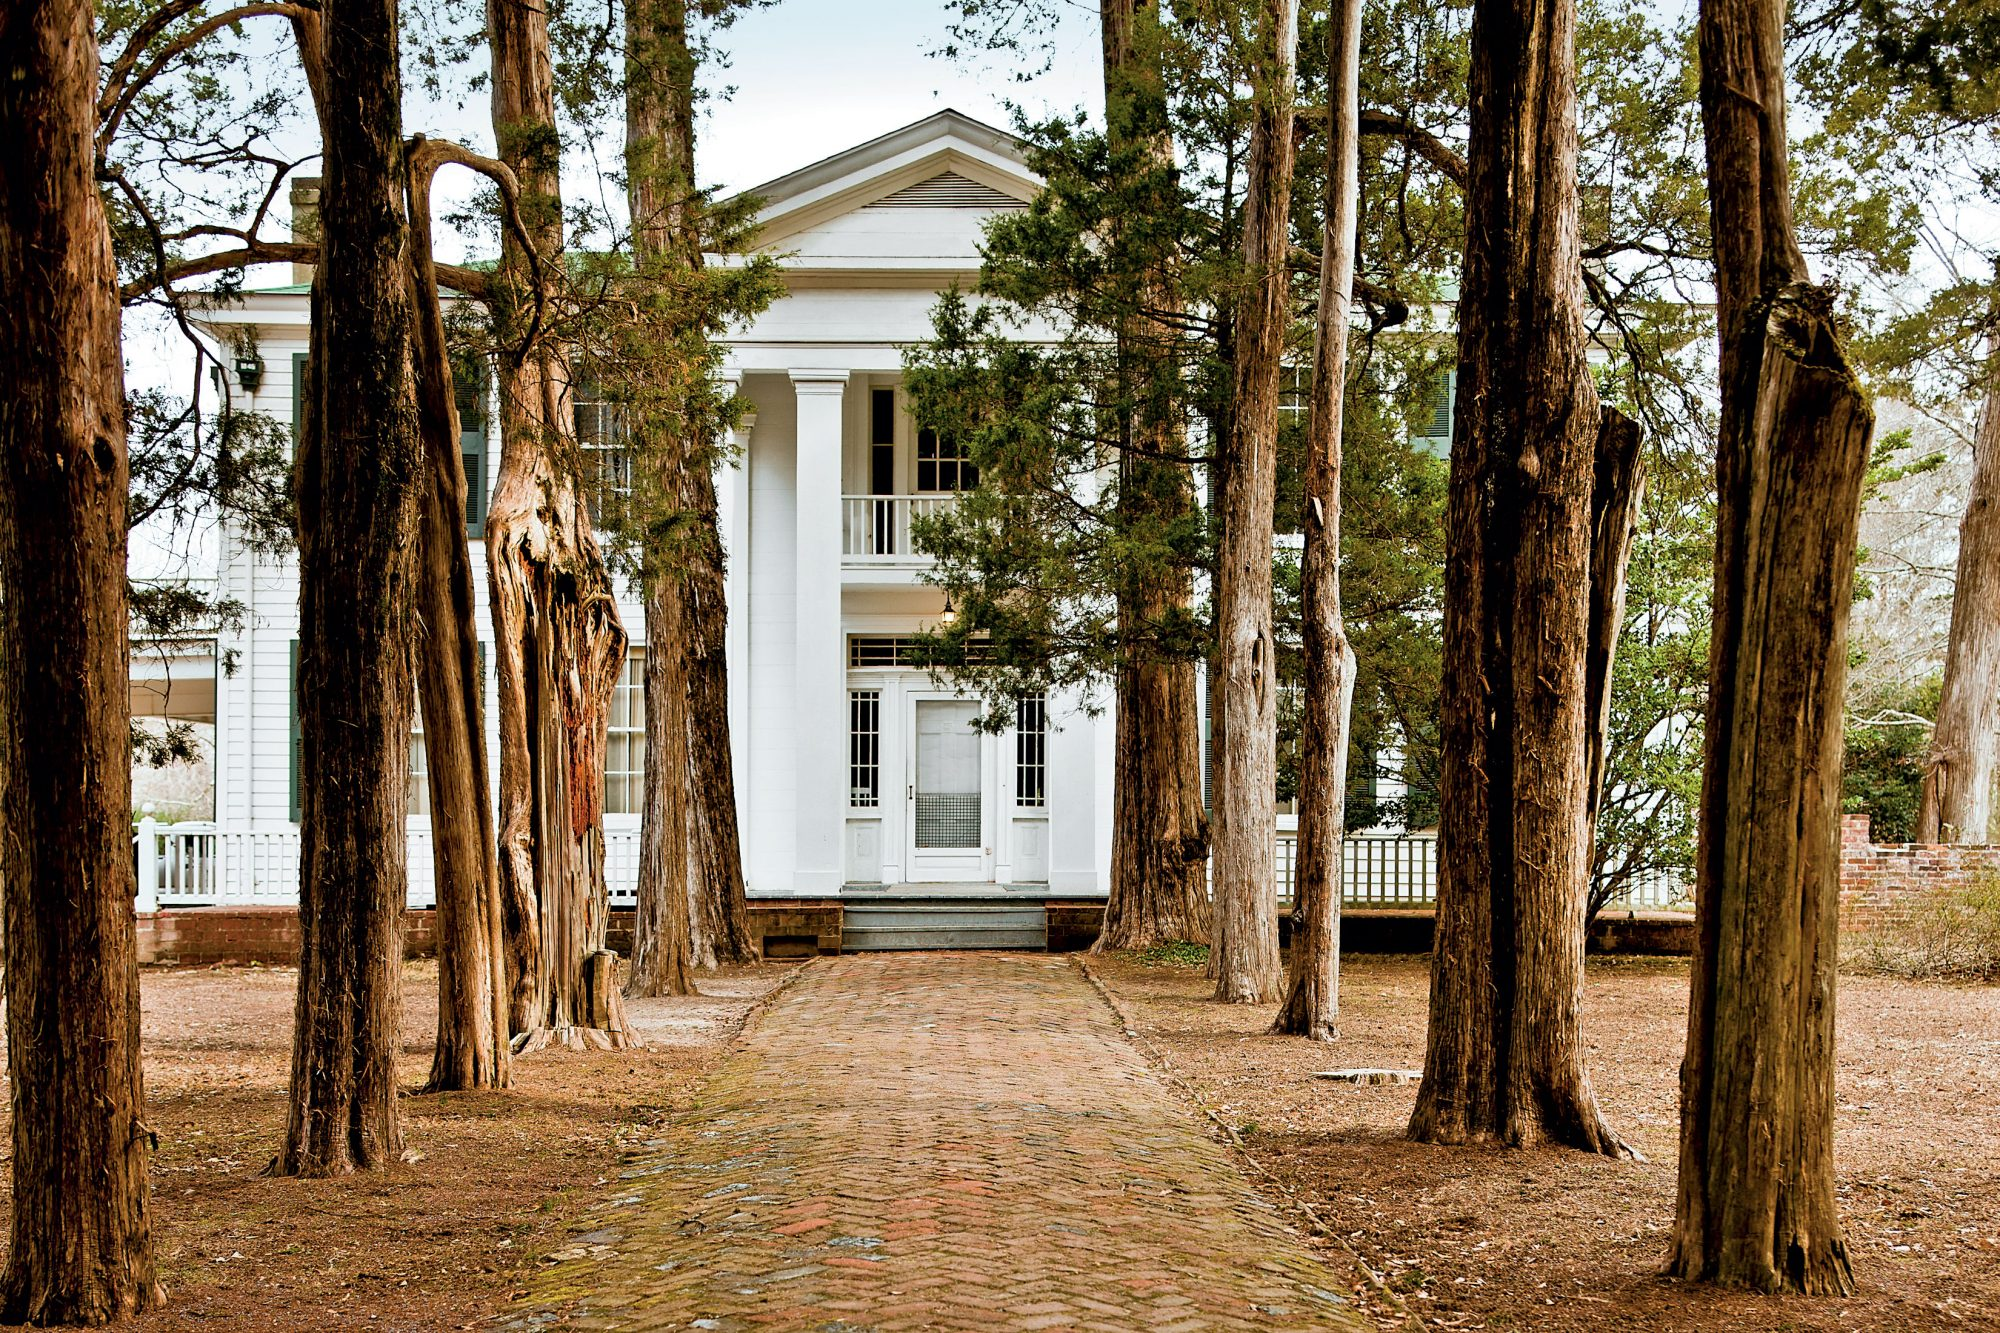 Tour Rowan Oak